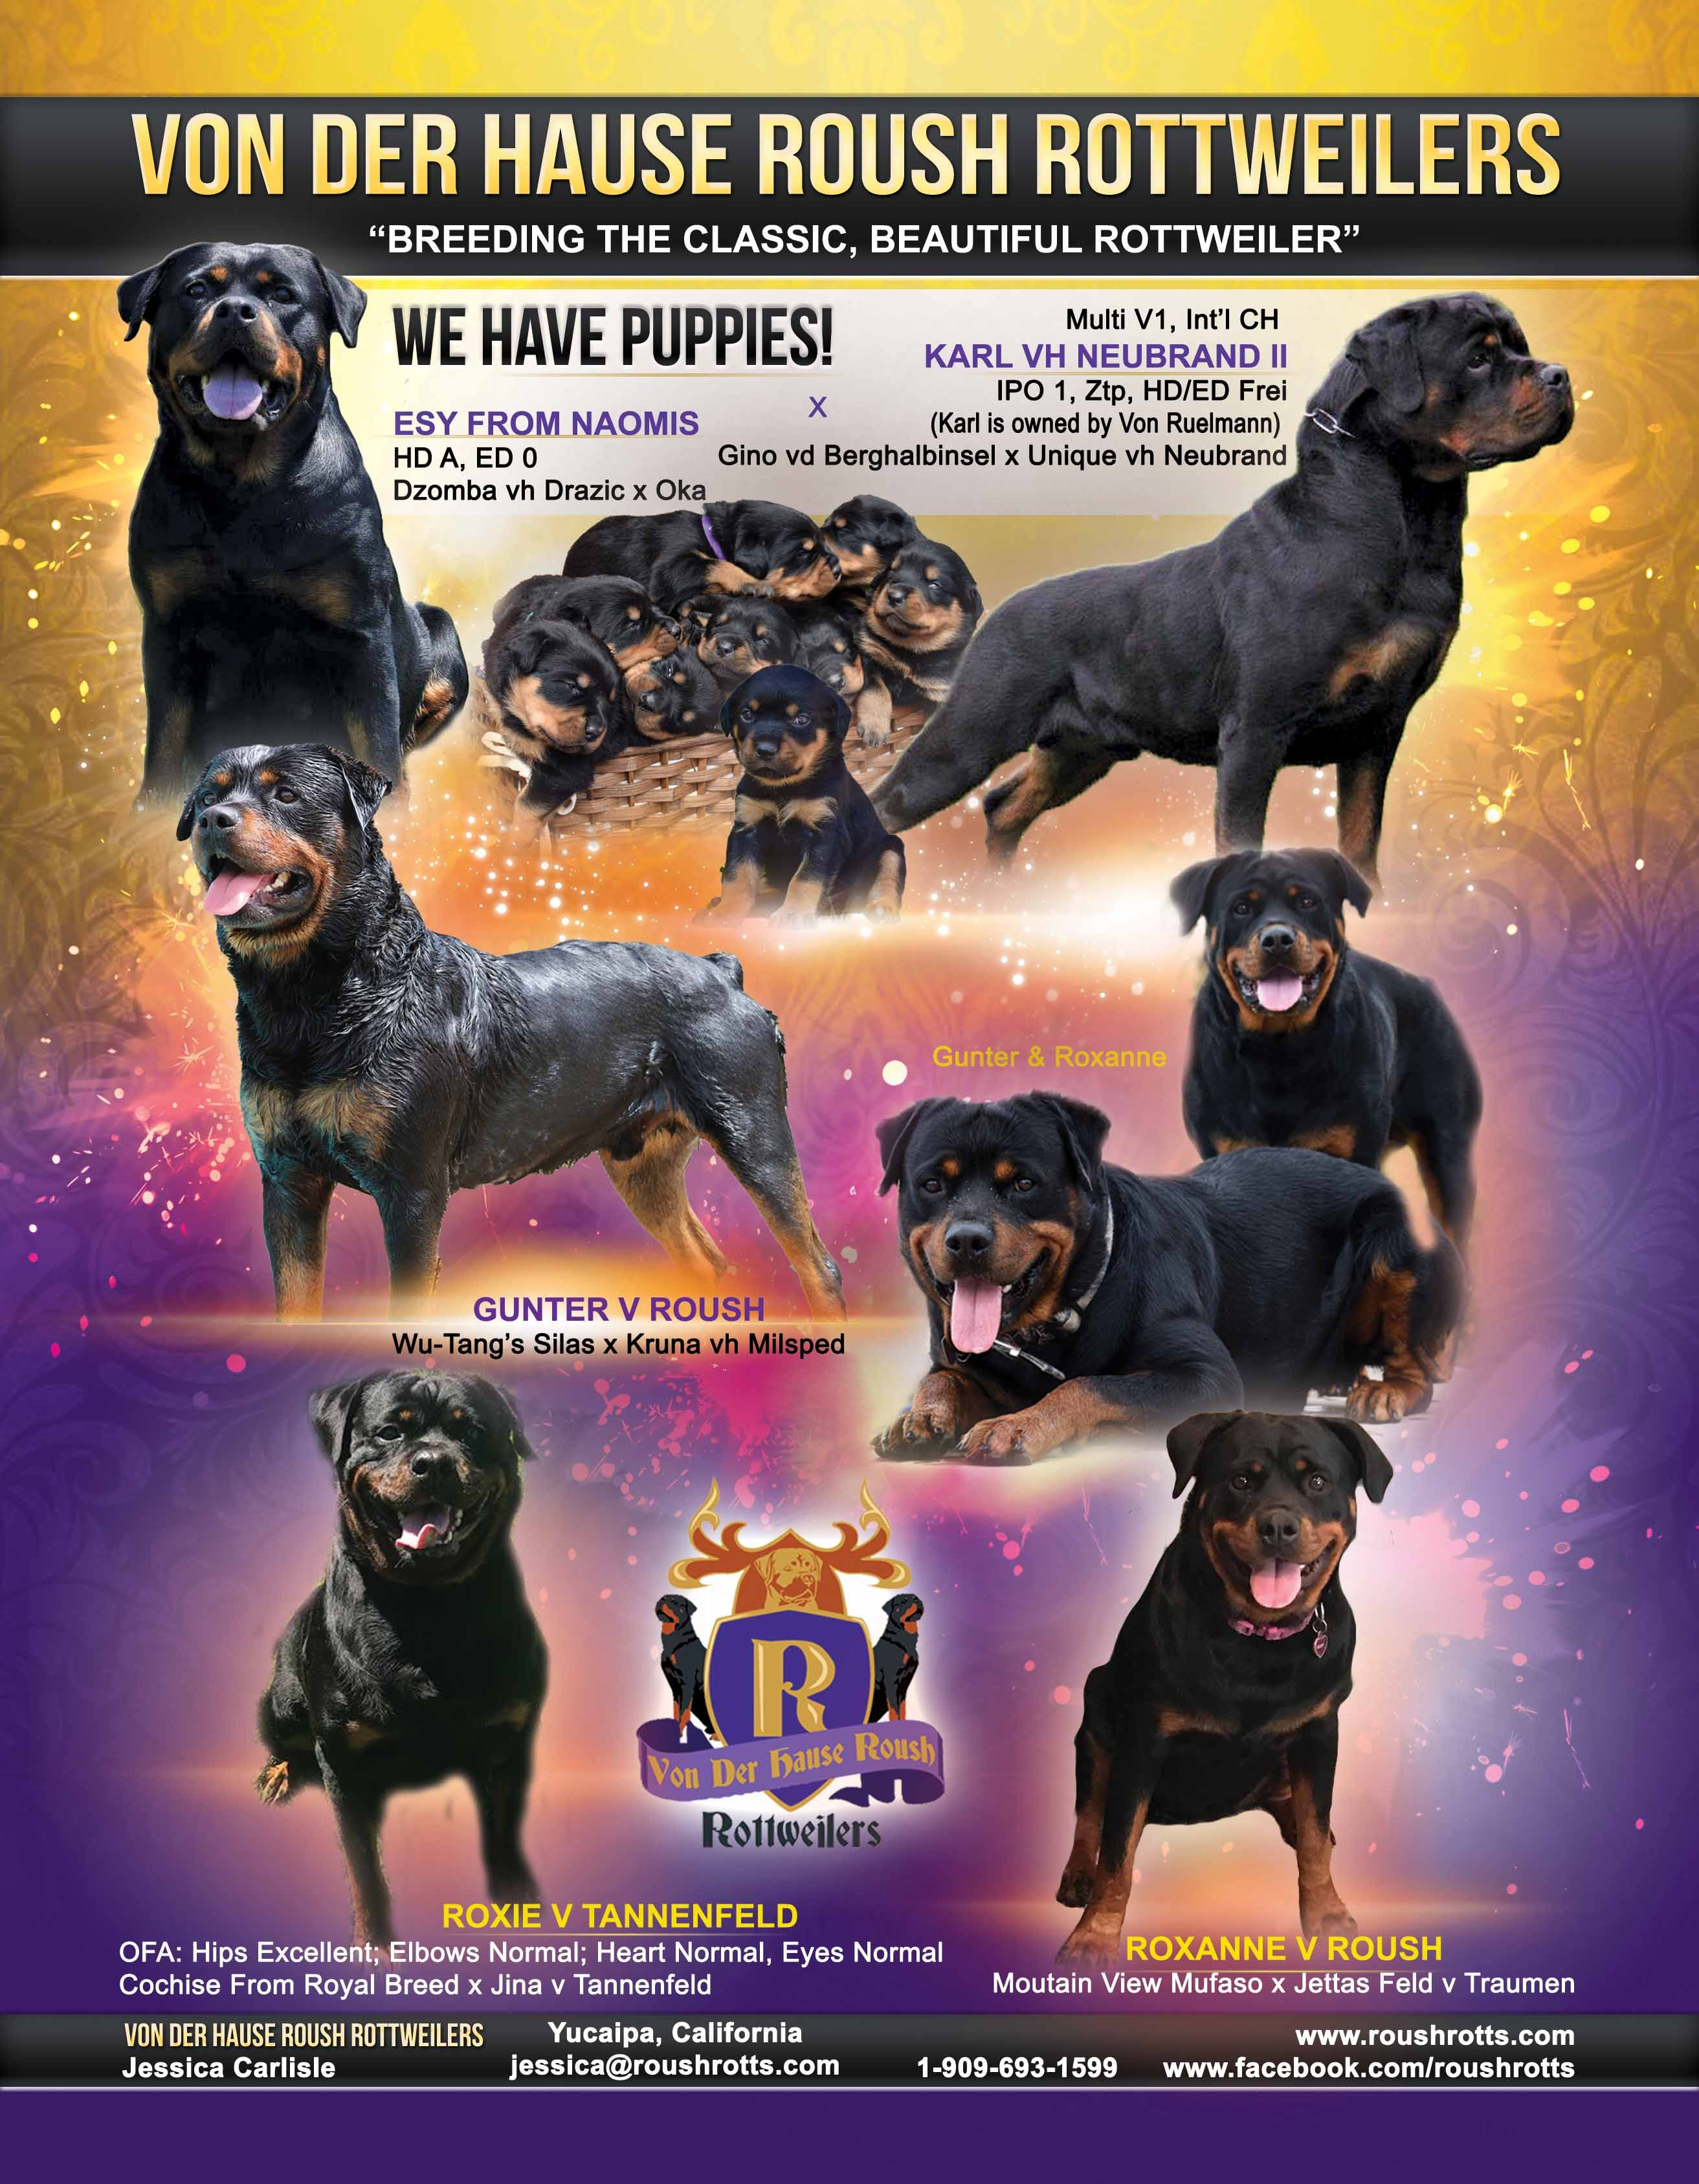 Von Der Hause Roush Rottweilers Breeding The Classic Beautiful